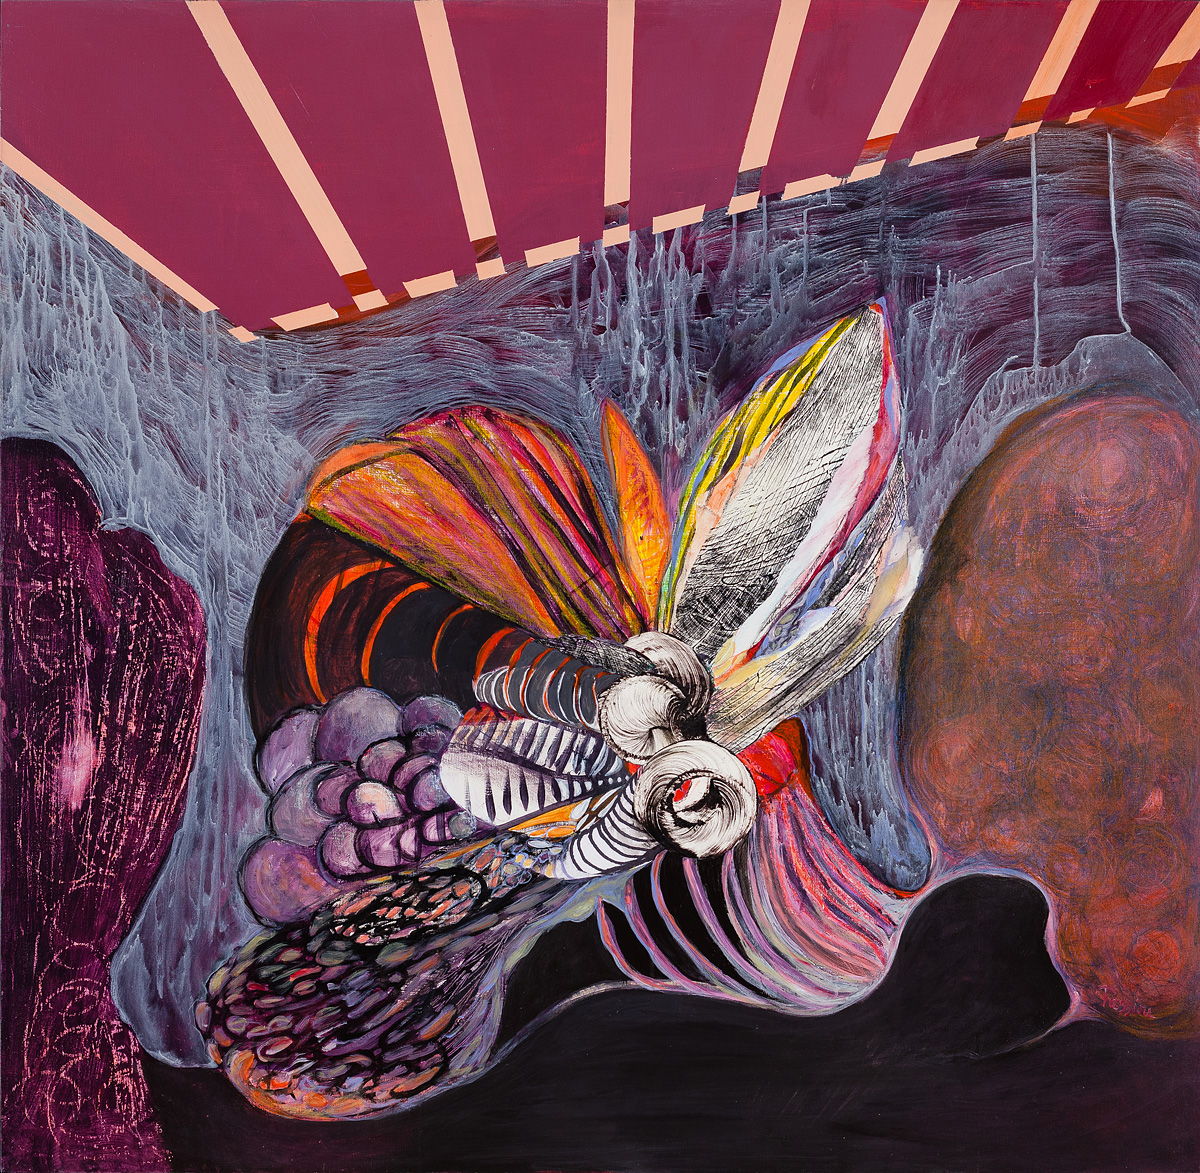 Flying Circus,  mixed media, acrylic, collage on wood panels, 48 x 48 inches